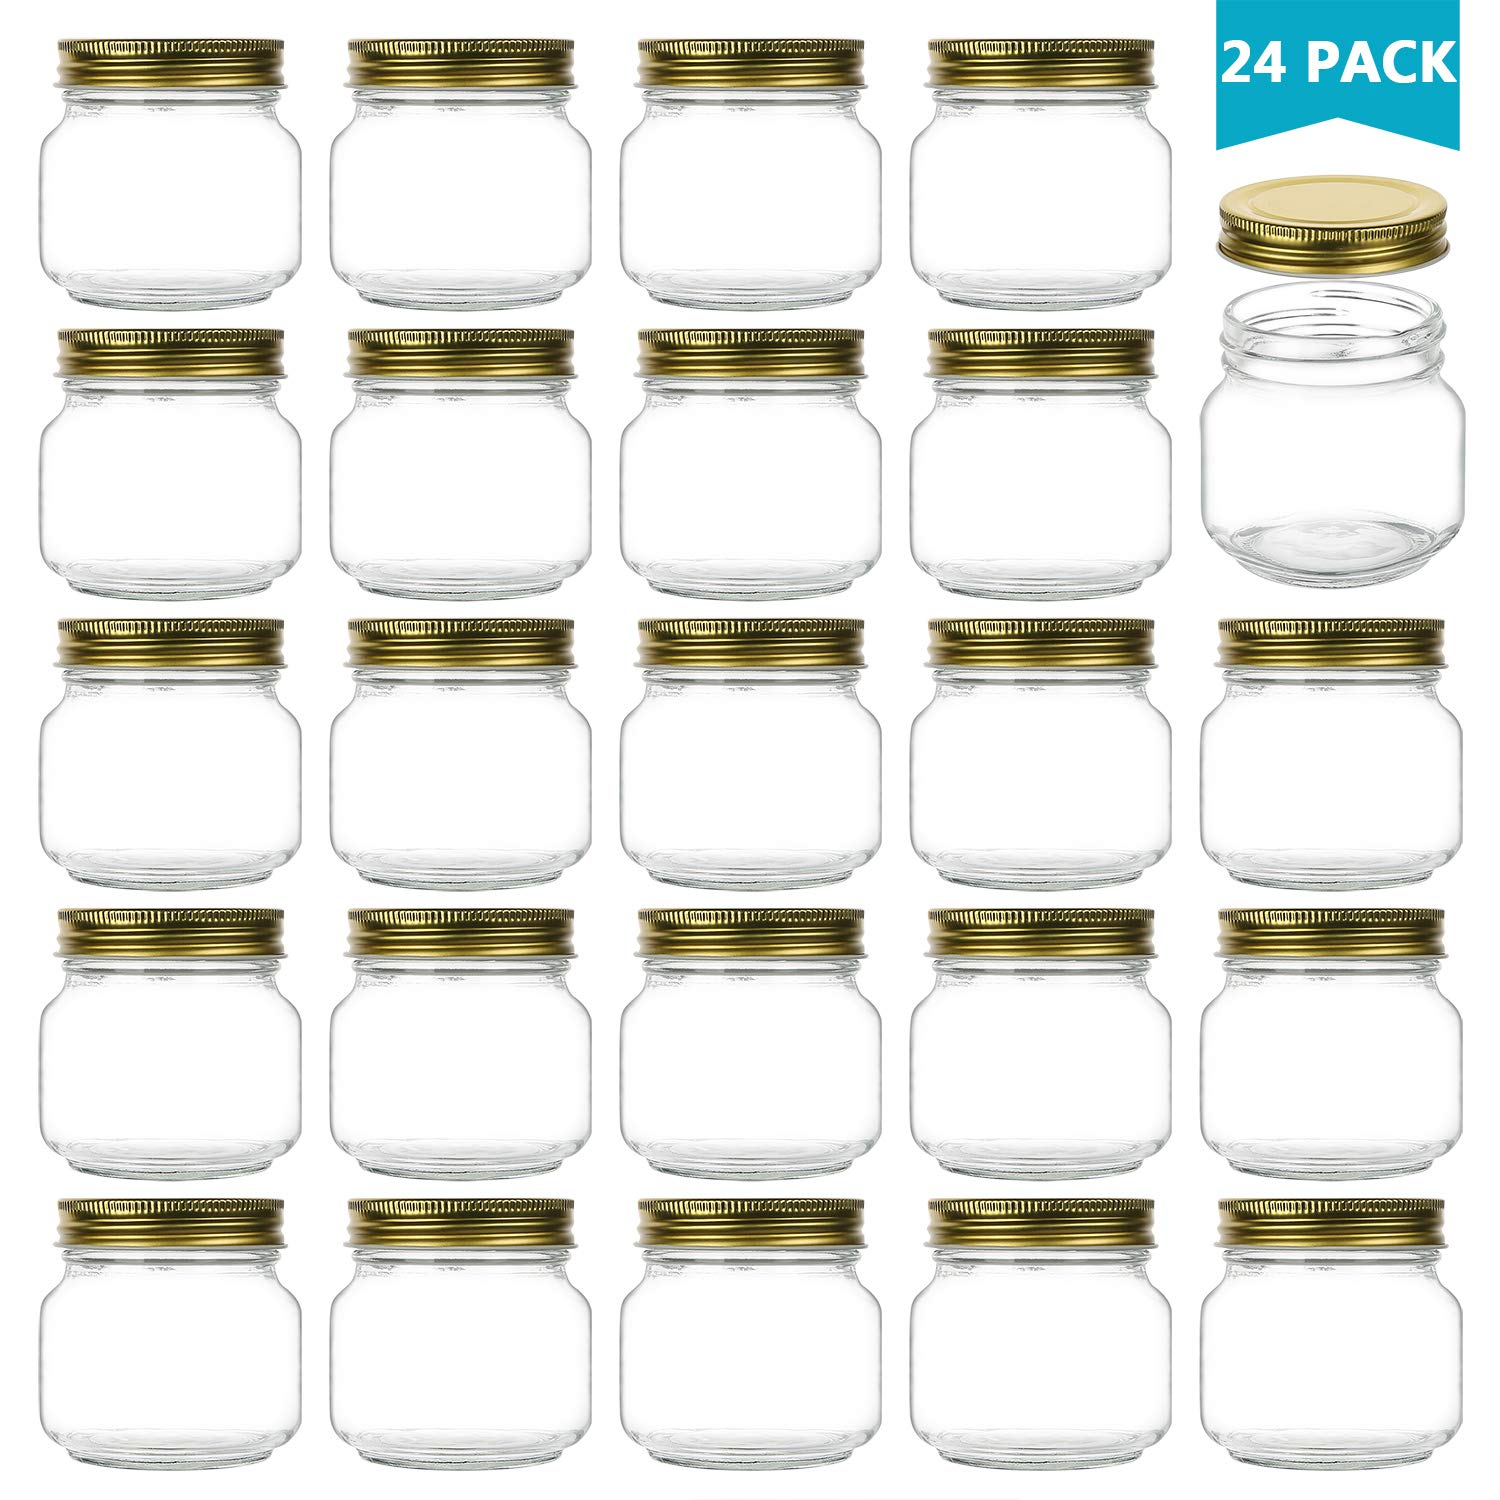 Encheng 8 oz Glass Jars With Lids,Ball Wide Mouth Mason Jars For Storage,Canning Jars For Caviar,Herb,Jelly,Jams,Honey,Dishware Safe,Set Of 24 by Encheng